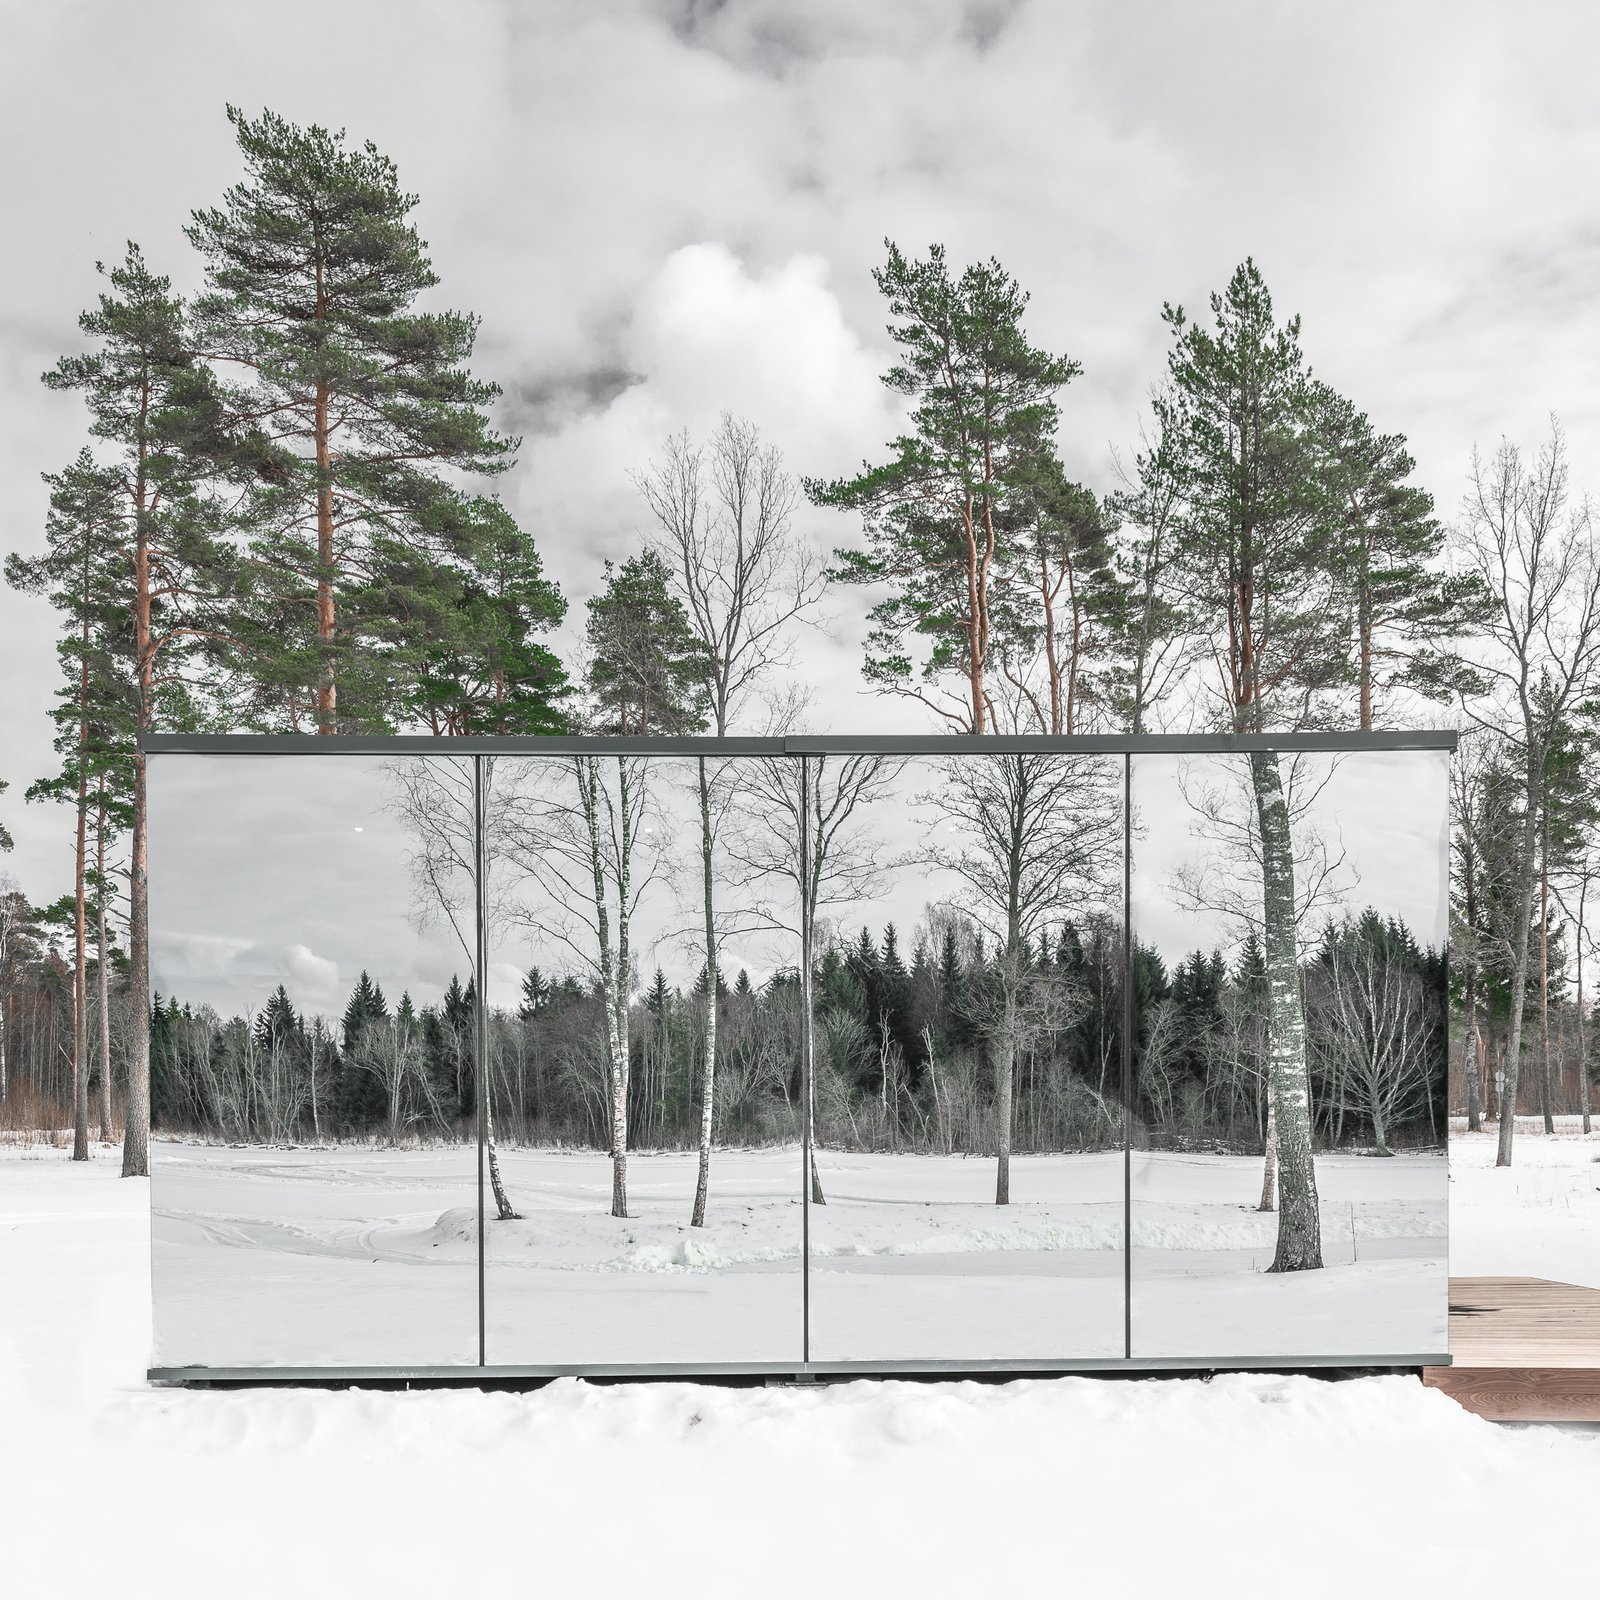 just-outside-estonia-is-the-ood-hotel-a-prefabricated-mirrored-house-that-can-be-plunked-down-...jpg